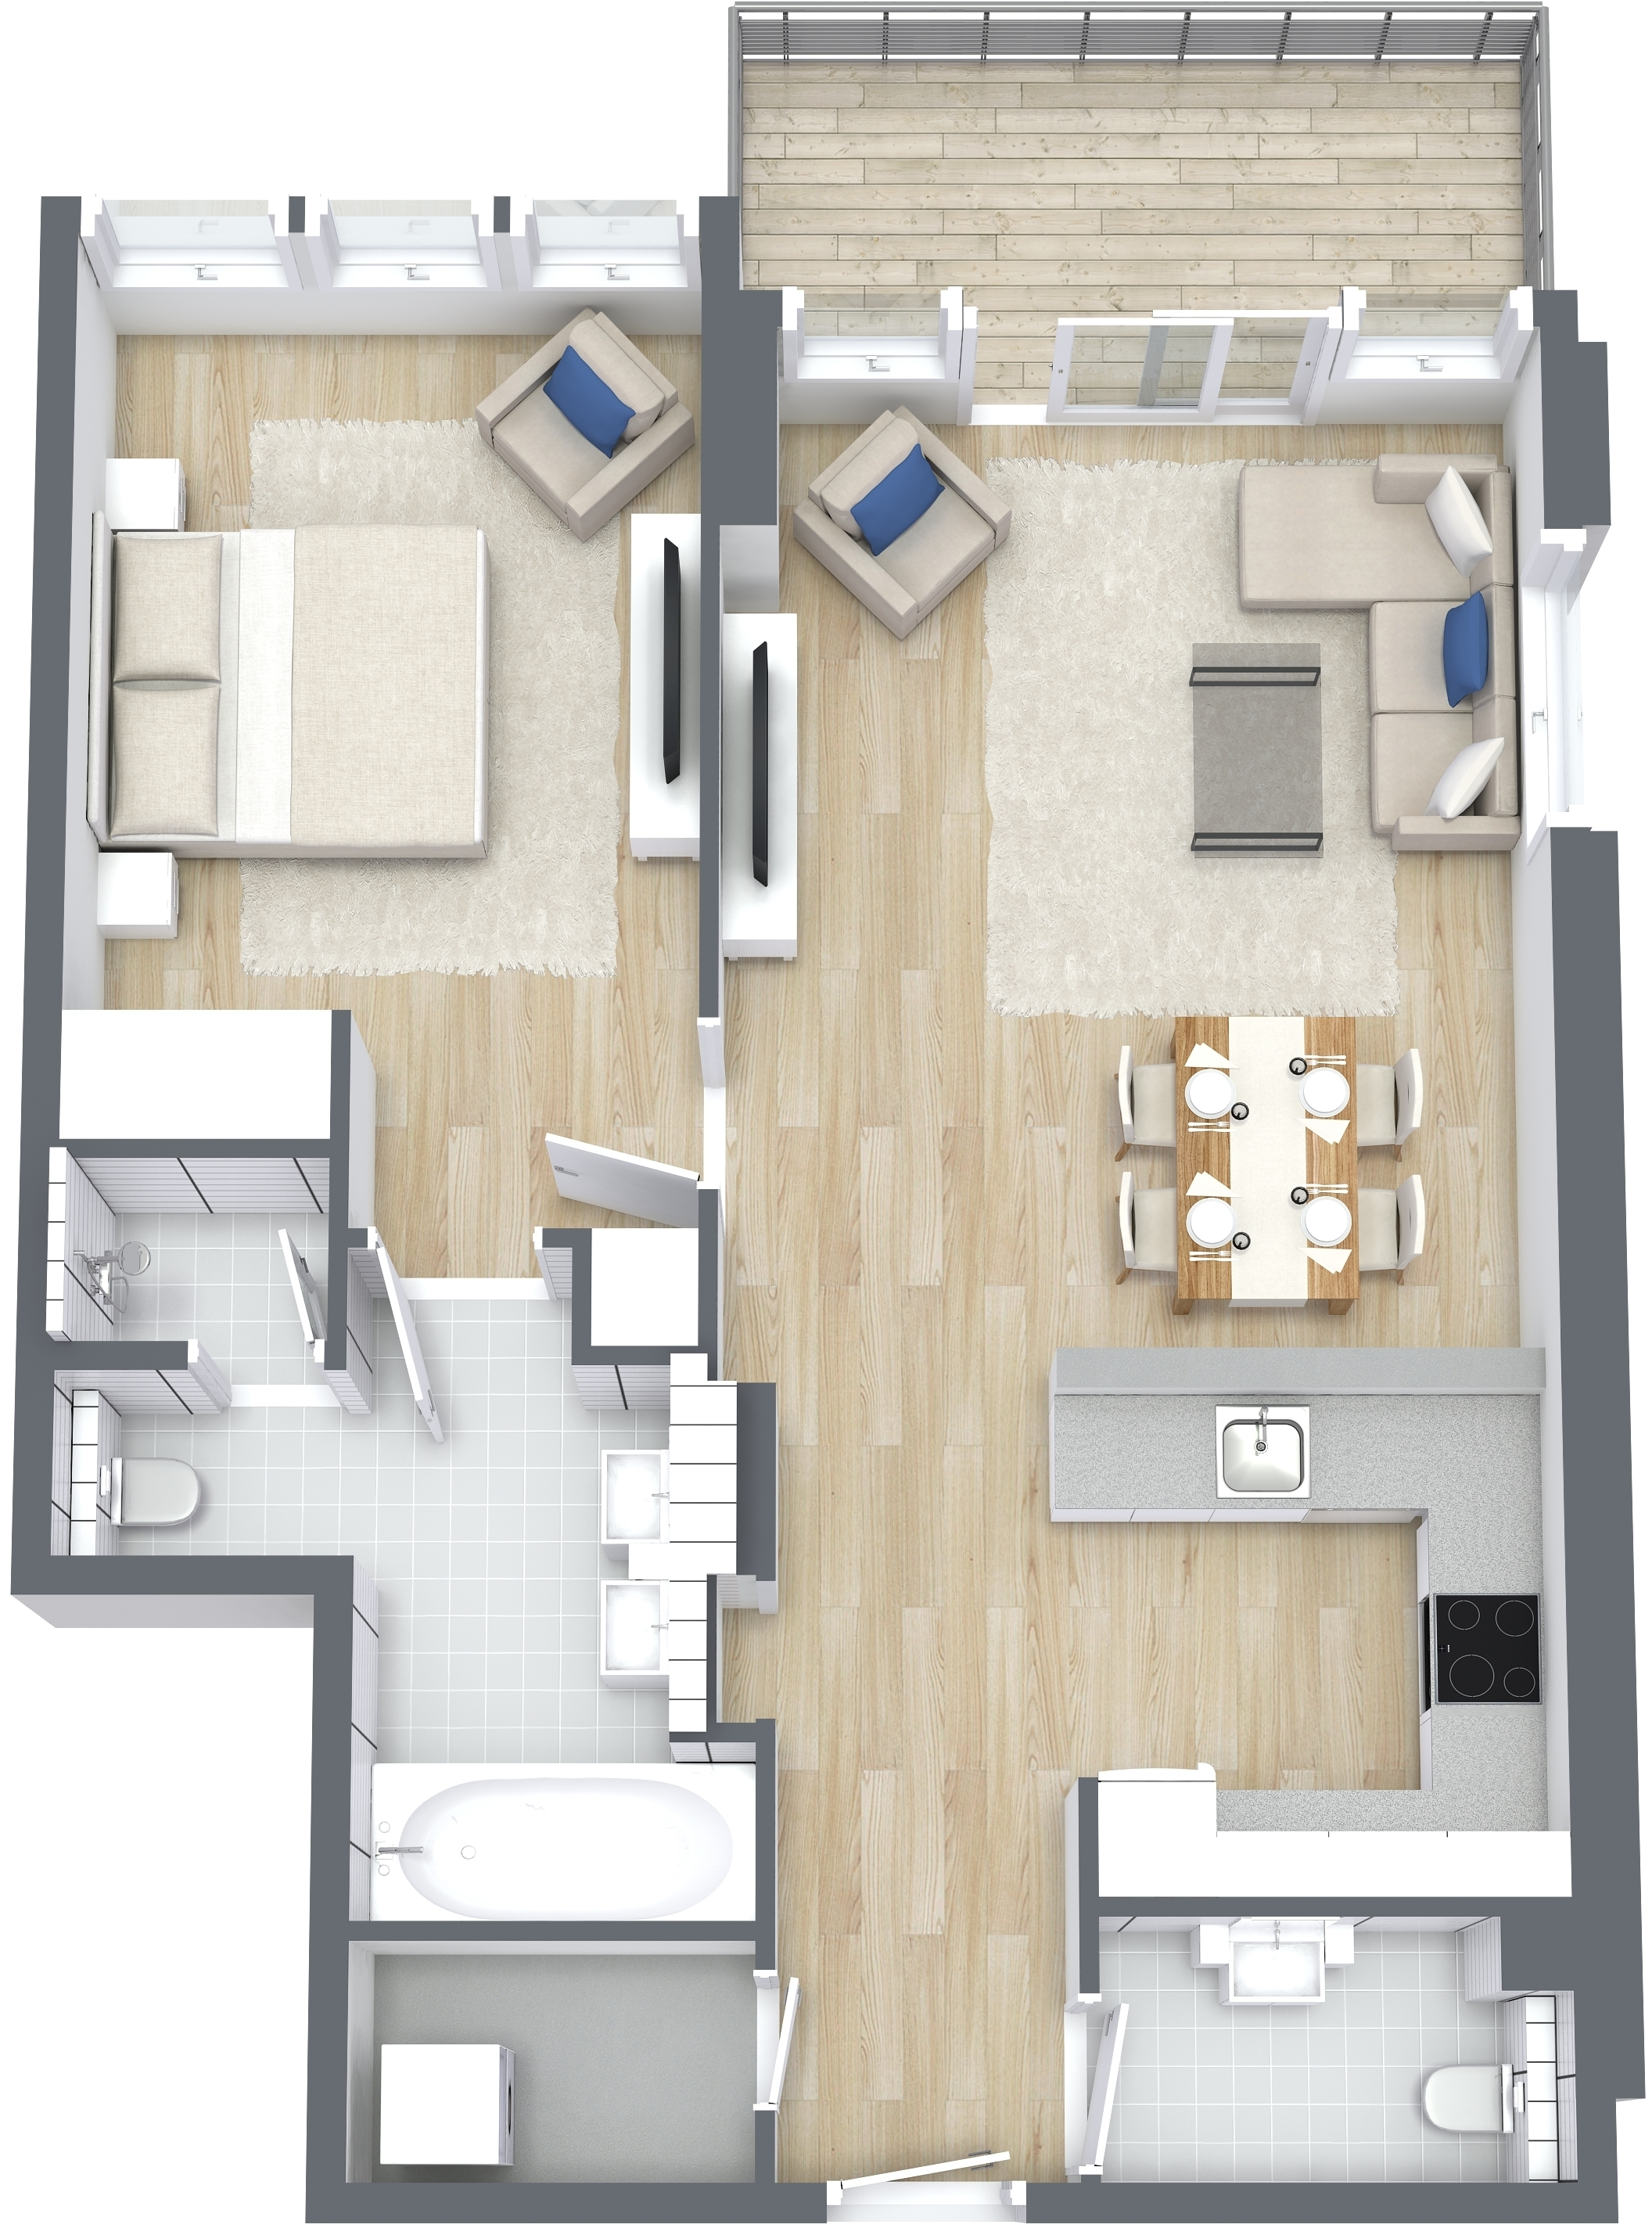 1 Bedroom Type B Apartment, Size 908 sq ft